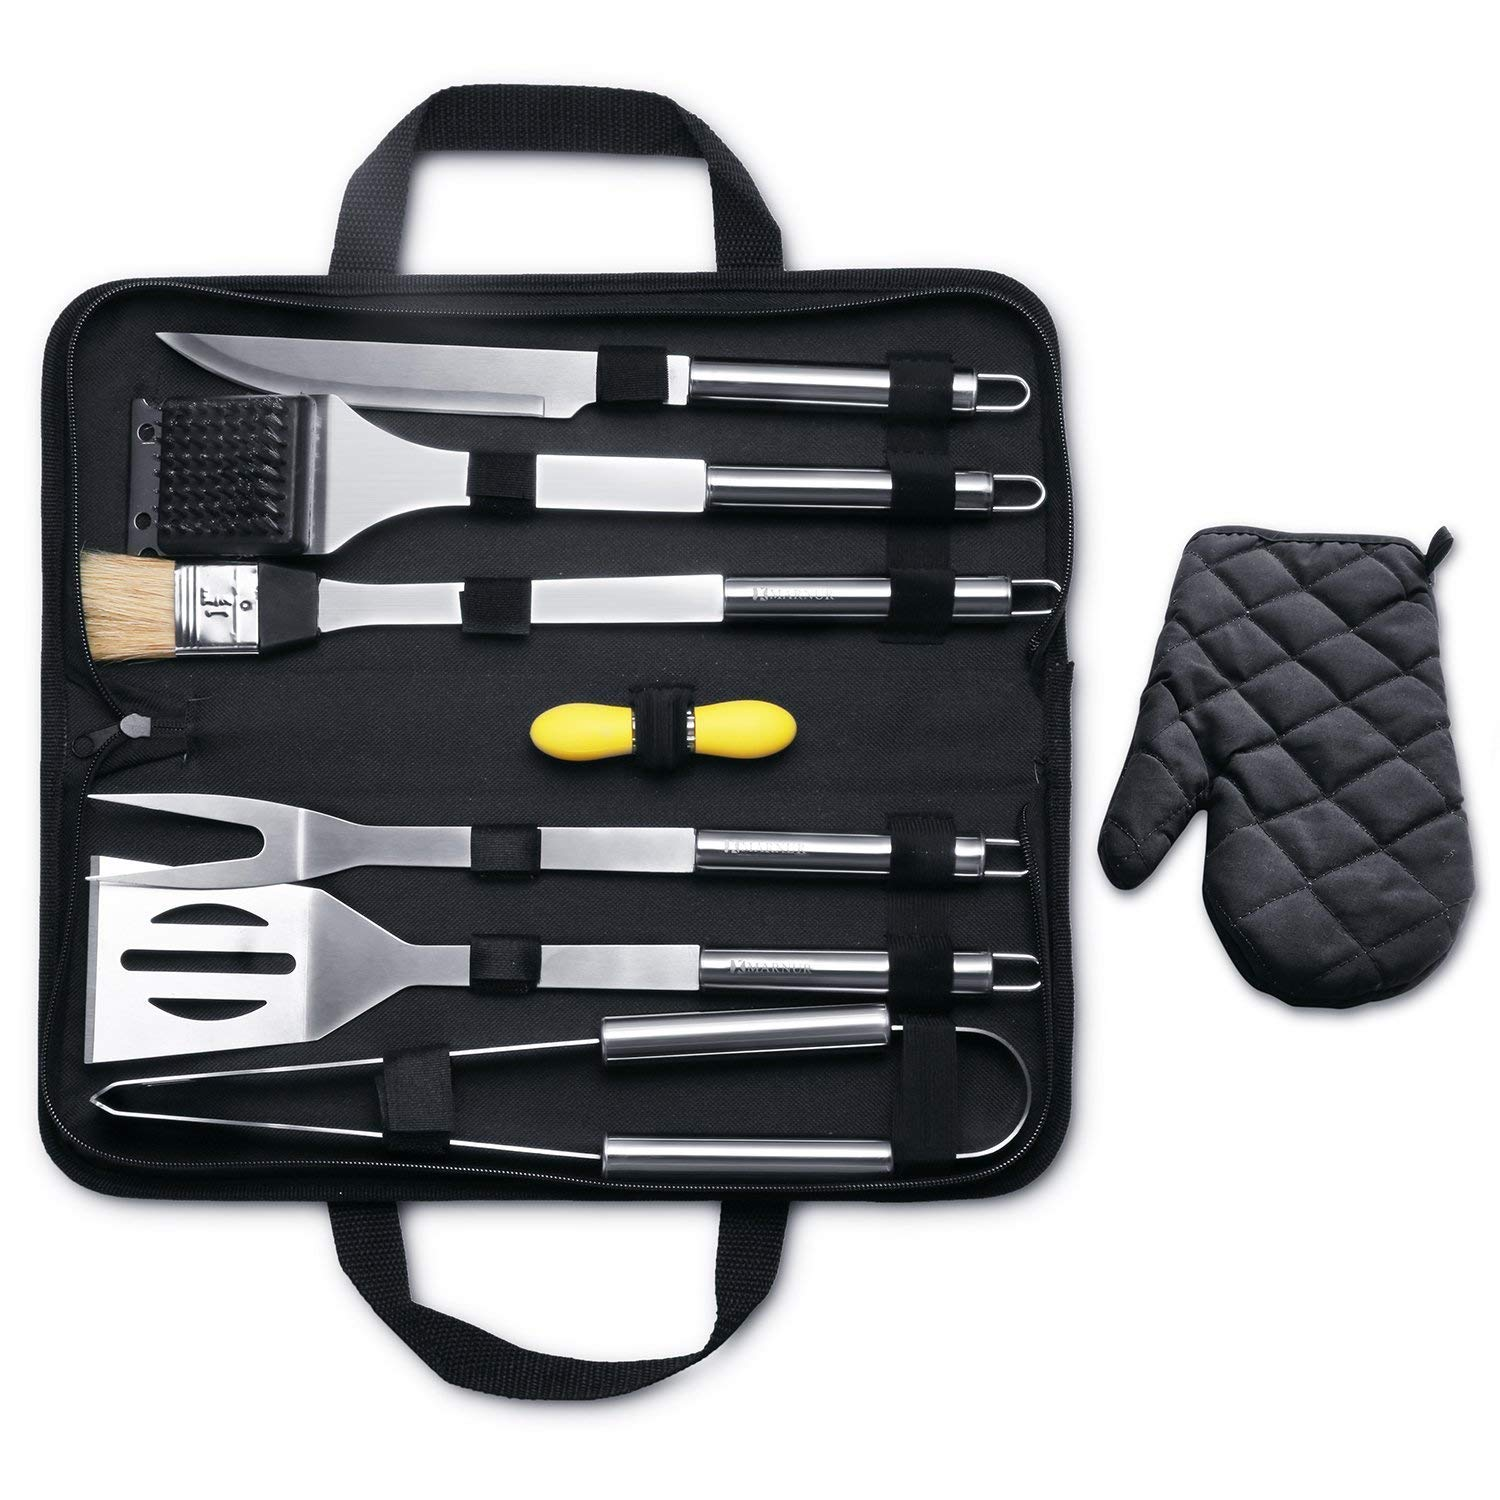 MARNUR BBQ Barbecue Set Tools Kit Tool with 7 Barbecue Accessories for Grilling Camping Picnic Spatula